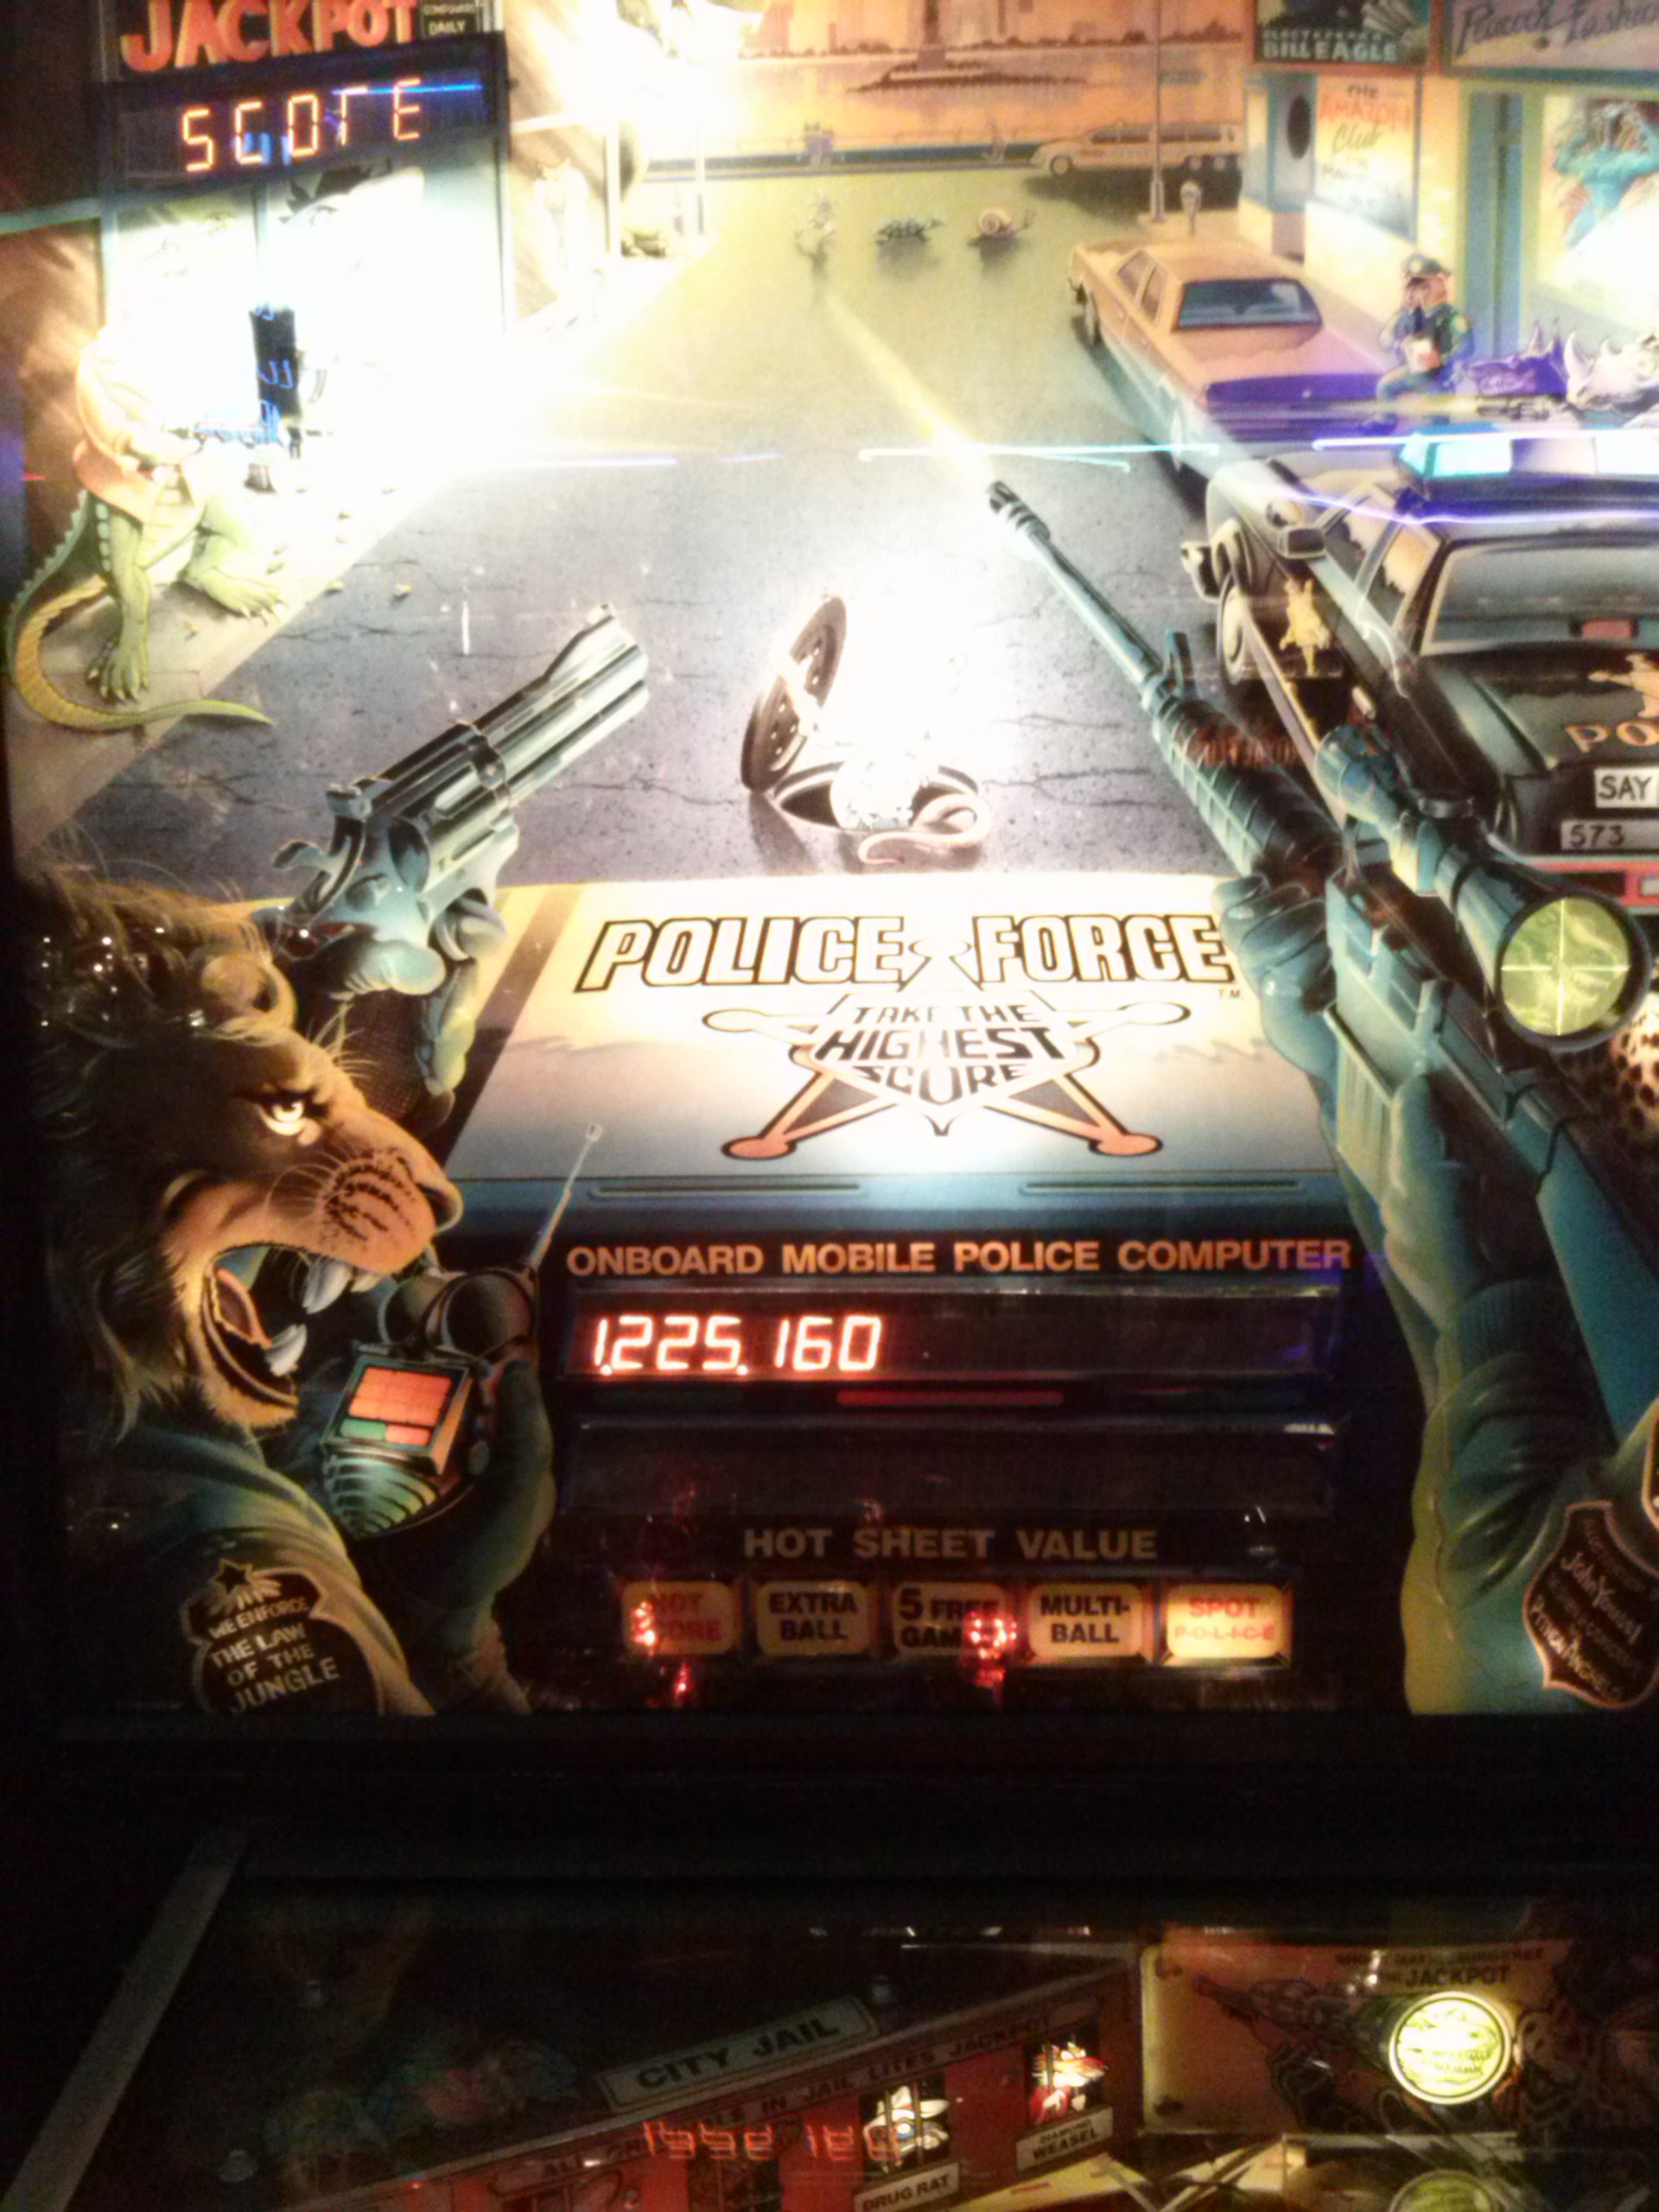 nester: Police Force (Pinball: 3 Balls) 1,225,160 points on 2014-05-20 14:48:22